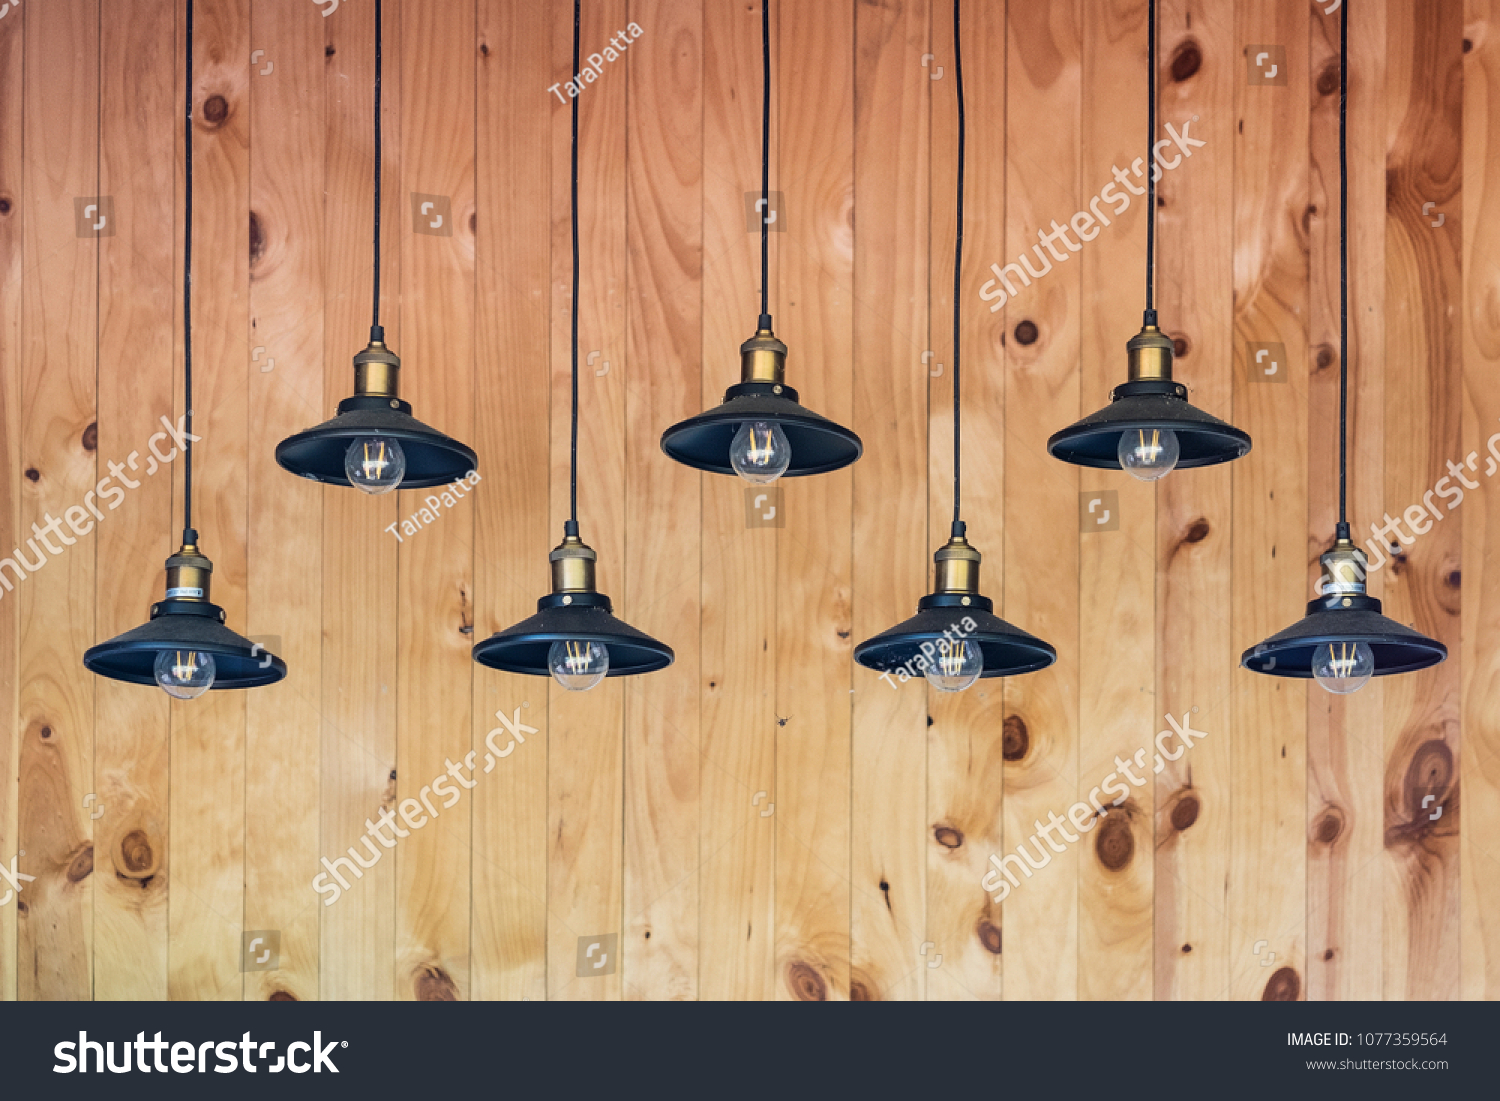 Down lights bulbs hanging ceiling wooden stock photo edit now